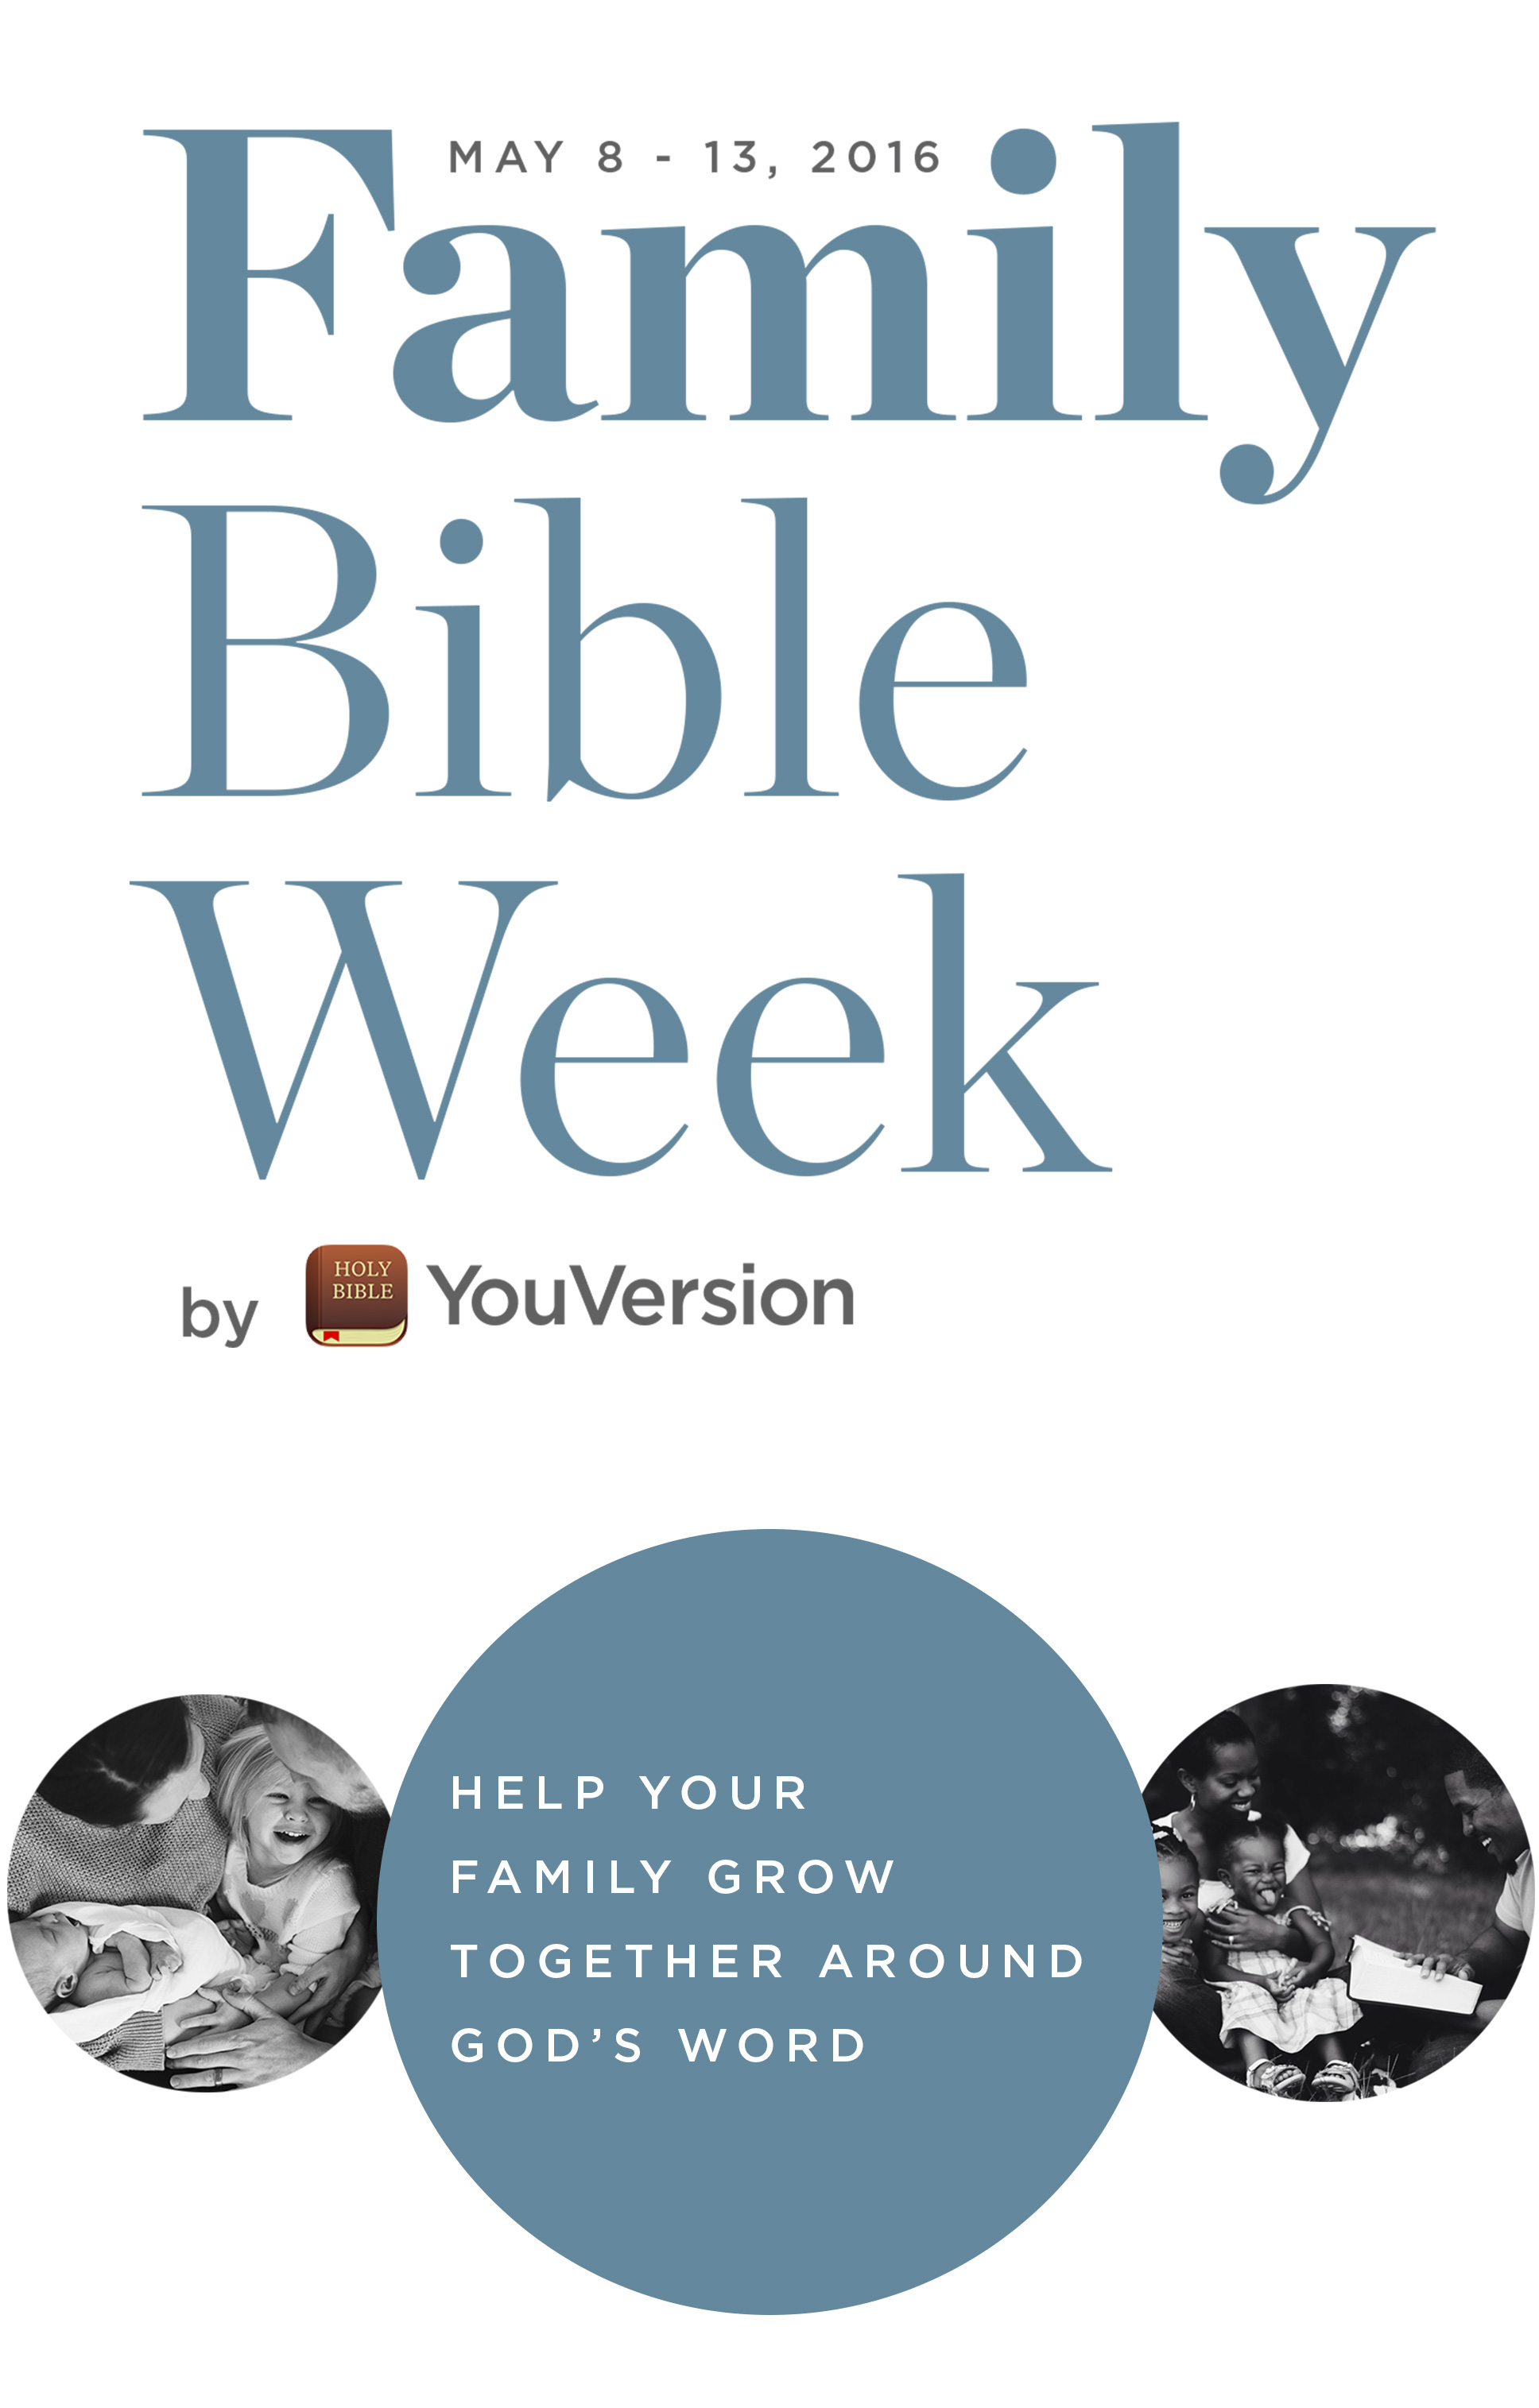 Family Bible Week 2016